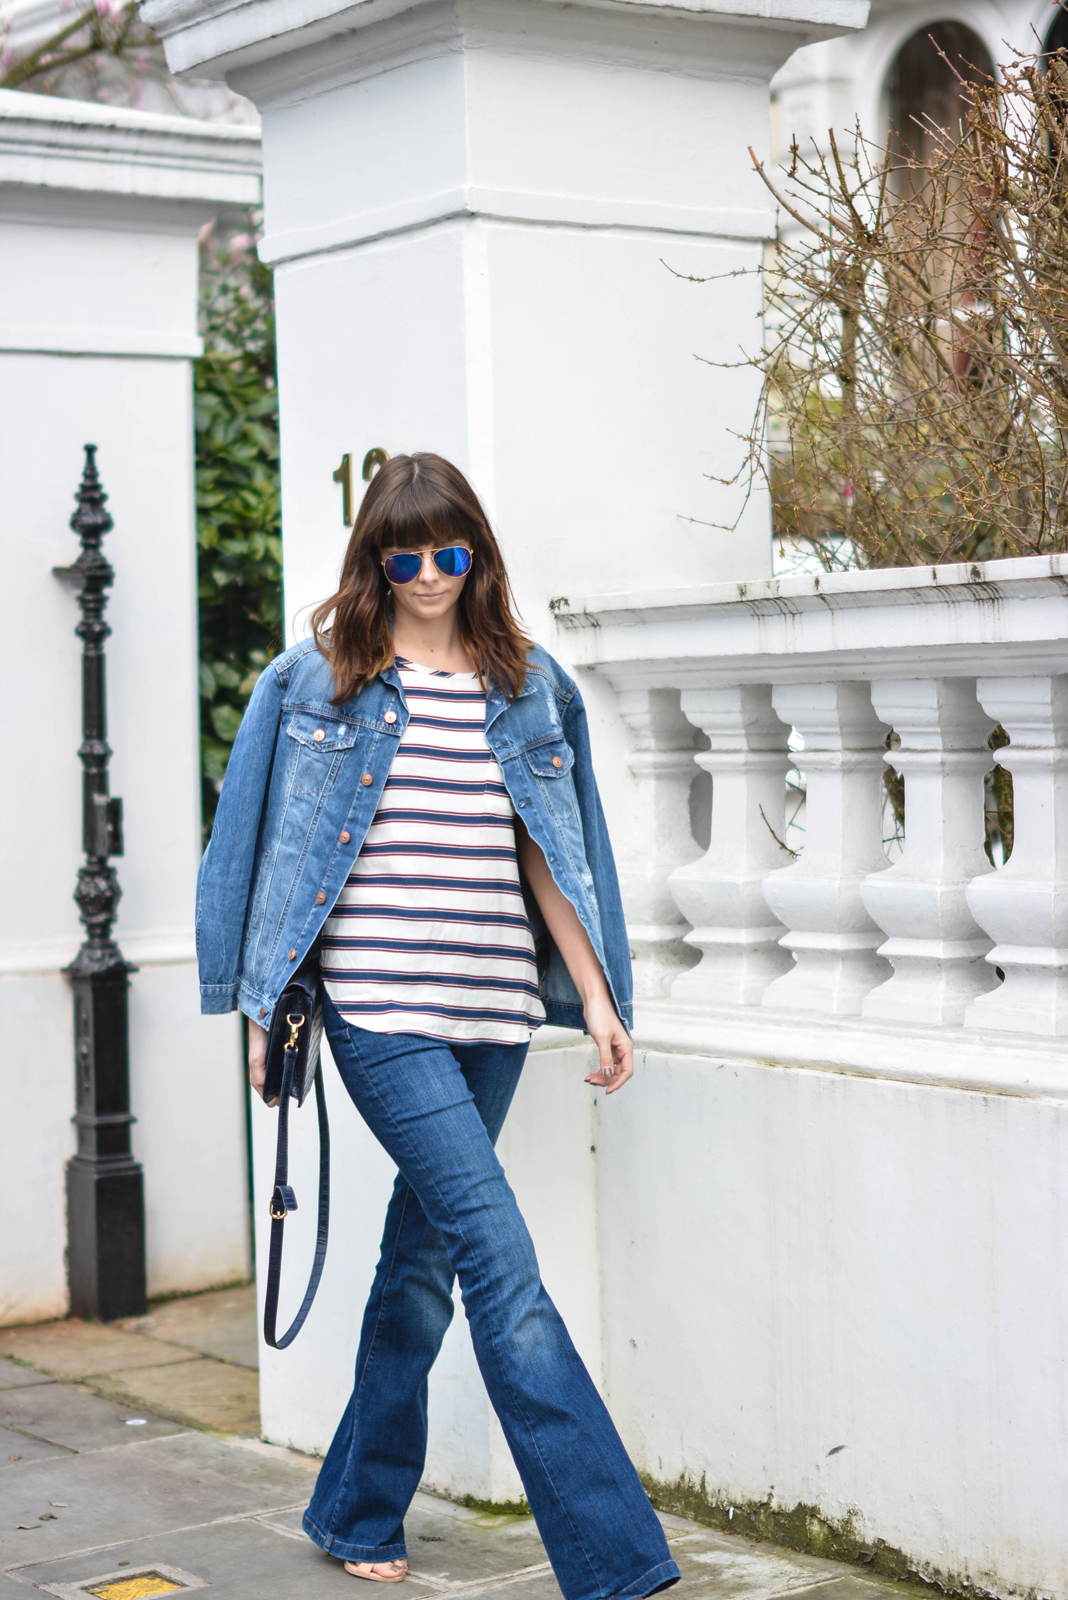 EJSTYLE - Emma Hill, Double denim, Spring outfit, flare jeans, stripe H&M top, H&M denim jacket, navy bag, OOTD